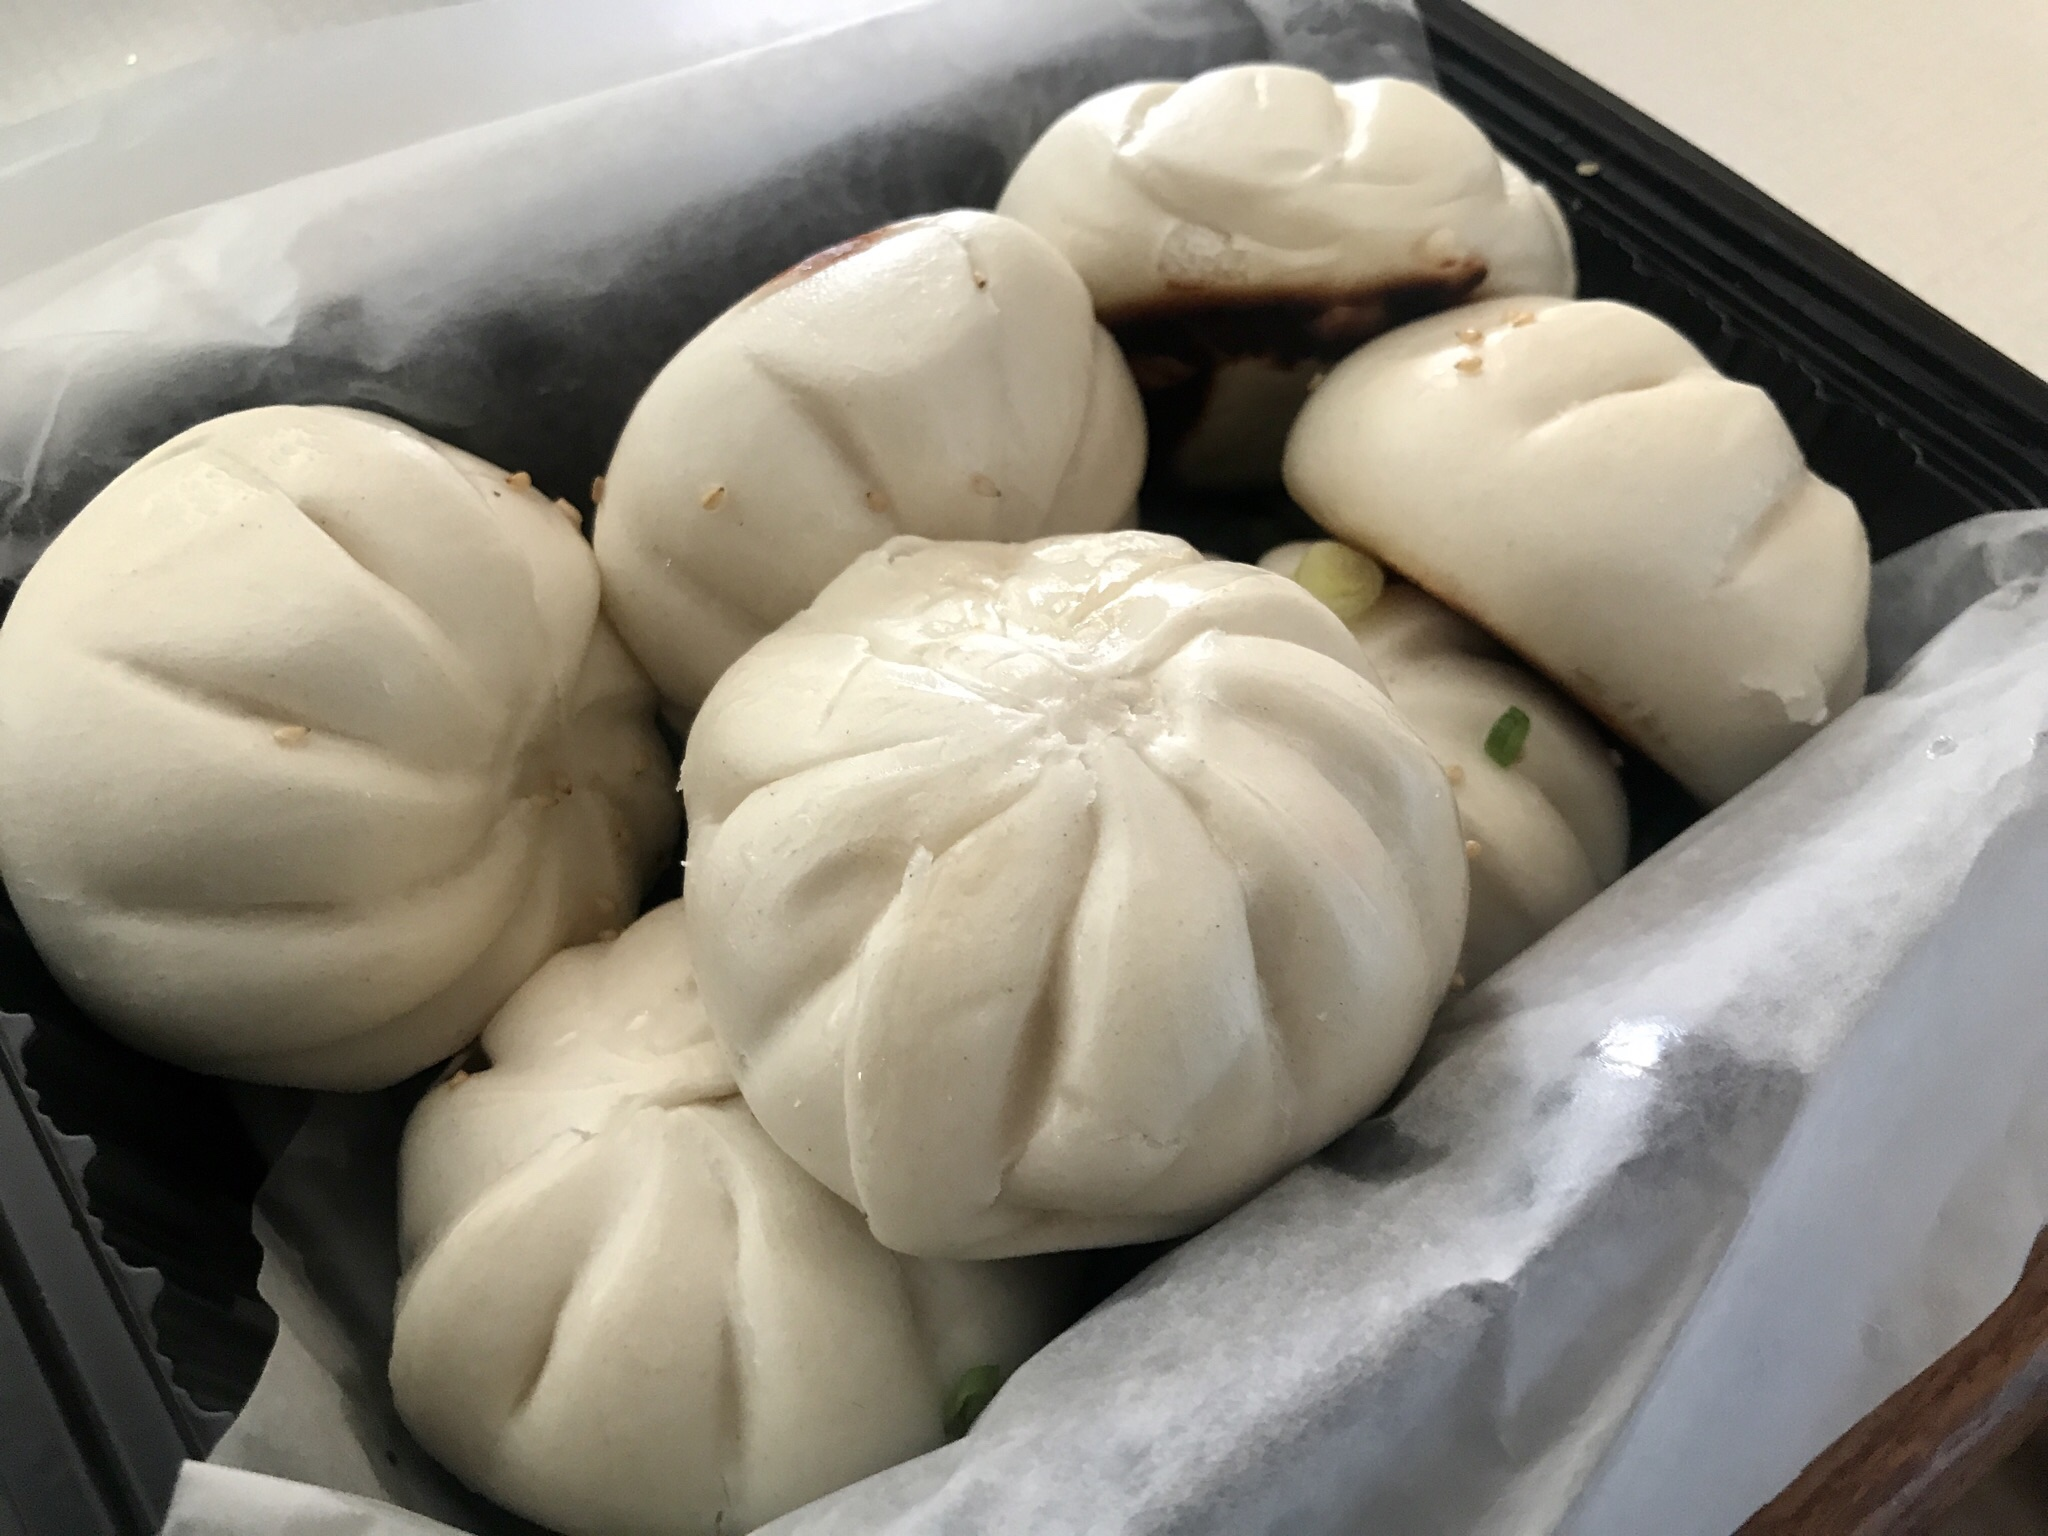 Dumplings at Hi Dumplings in Kennewick – August 10 2020